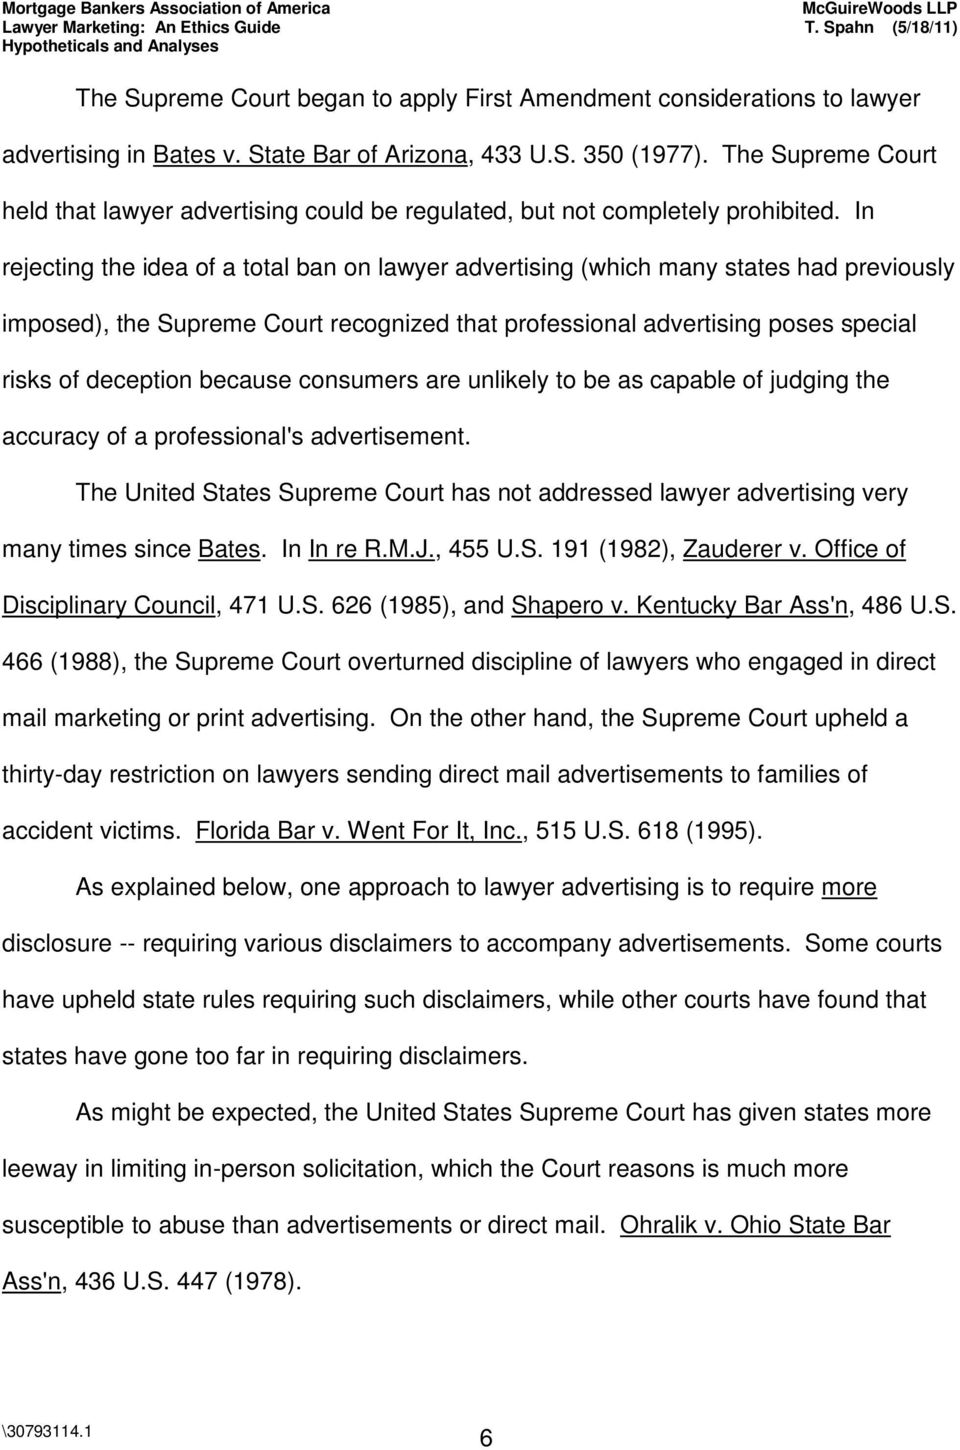 In rejecting the idea of a total ban on lawyer advertising (which many states had previously imposed), the Supreme Court recognized that professional advertising poses special risks of deception